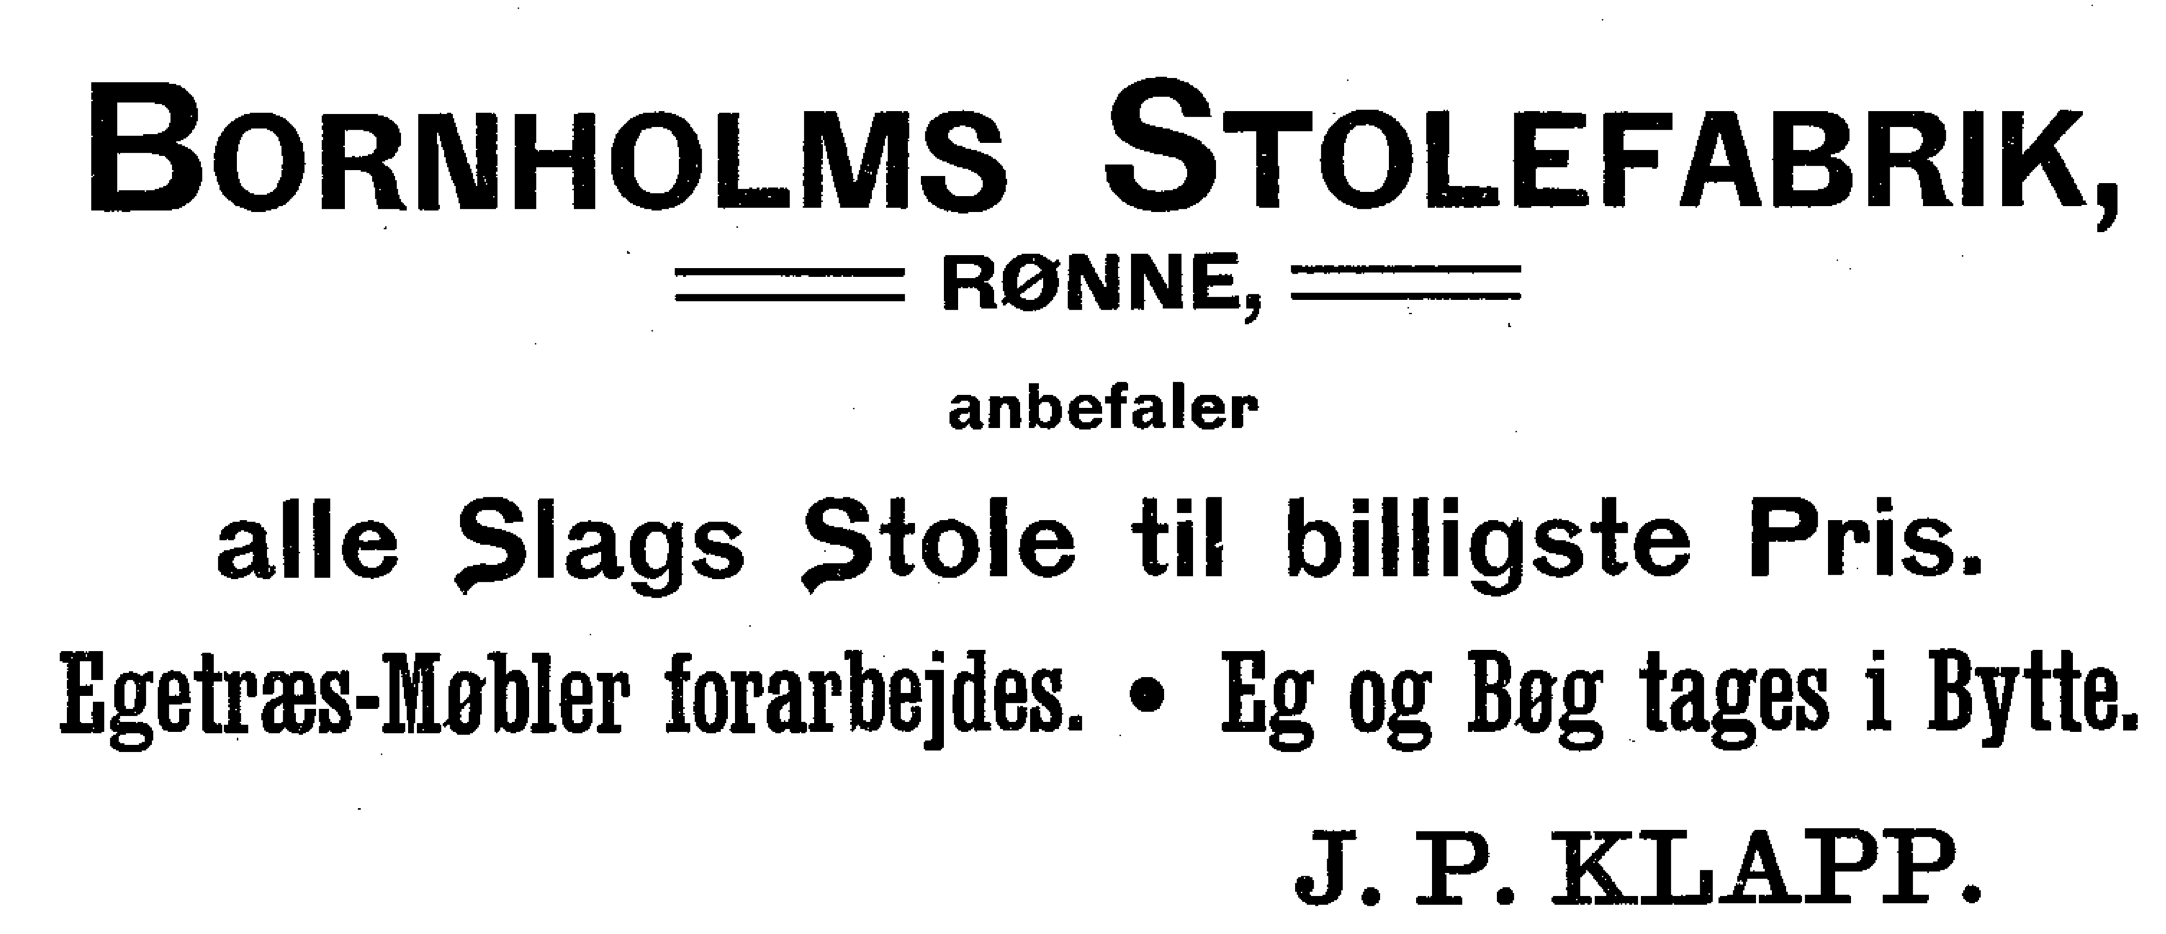 Reklame for Bornholms Stolefabrik - 1910